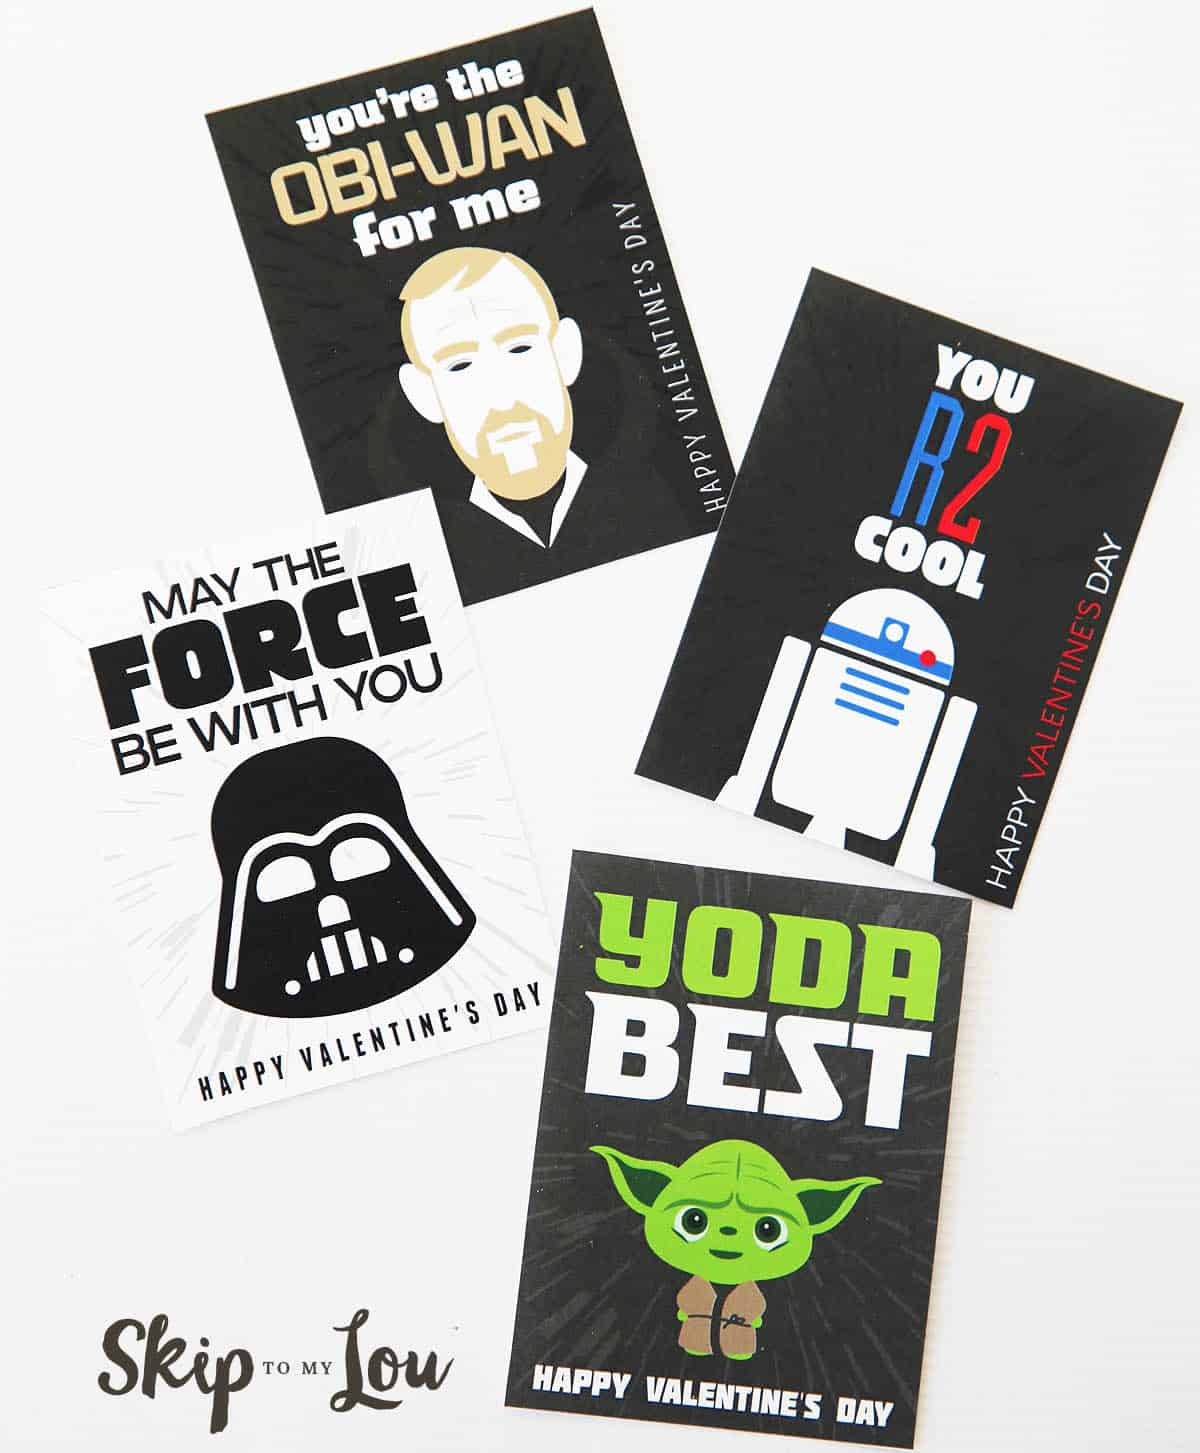 May The Fourth Be With You School Activities: The BEST Free Printable Star Wars Valentines